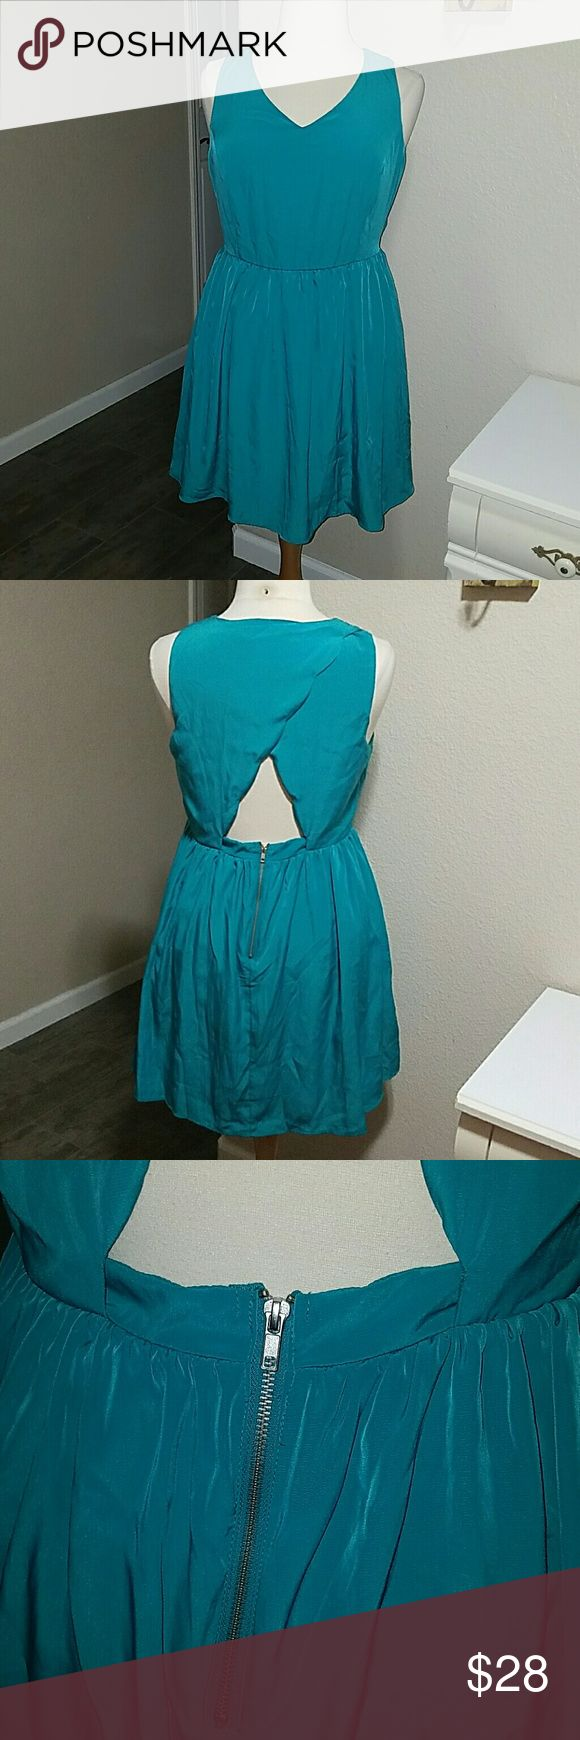 "Forever 21+ plus size dress Forever 21+ Juniors plus size 1X flirty dress. Blue/green coloe. Pretty scalloped cutout on back with silver zipper. Measures approx 37"" long from shoulder, laying flat Measures 19.5"" across chest, 17"" across waist. Forever 21+ Dresses"